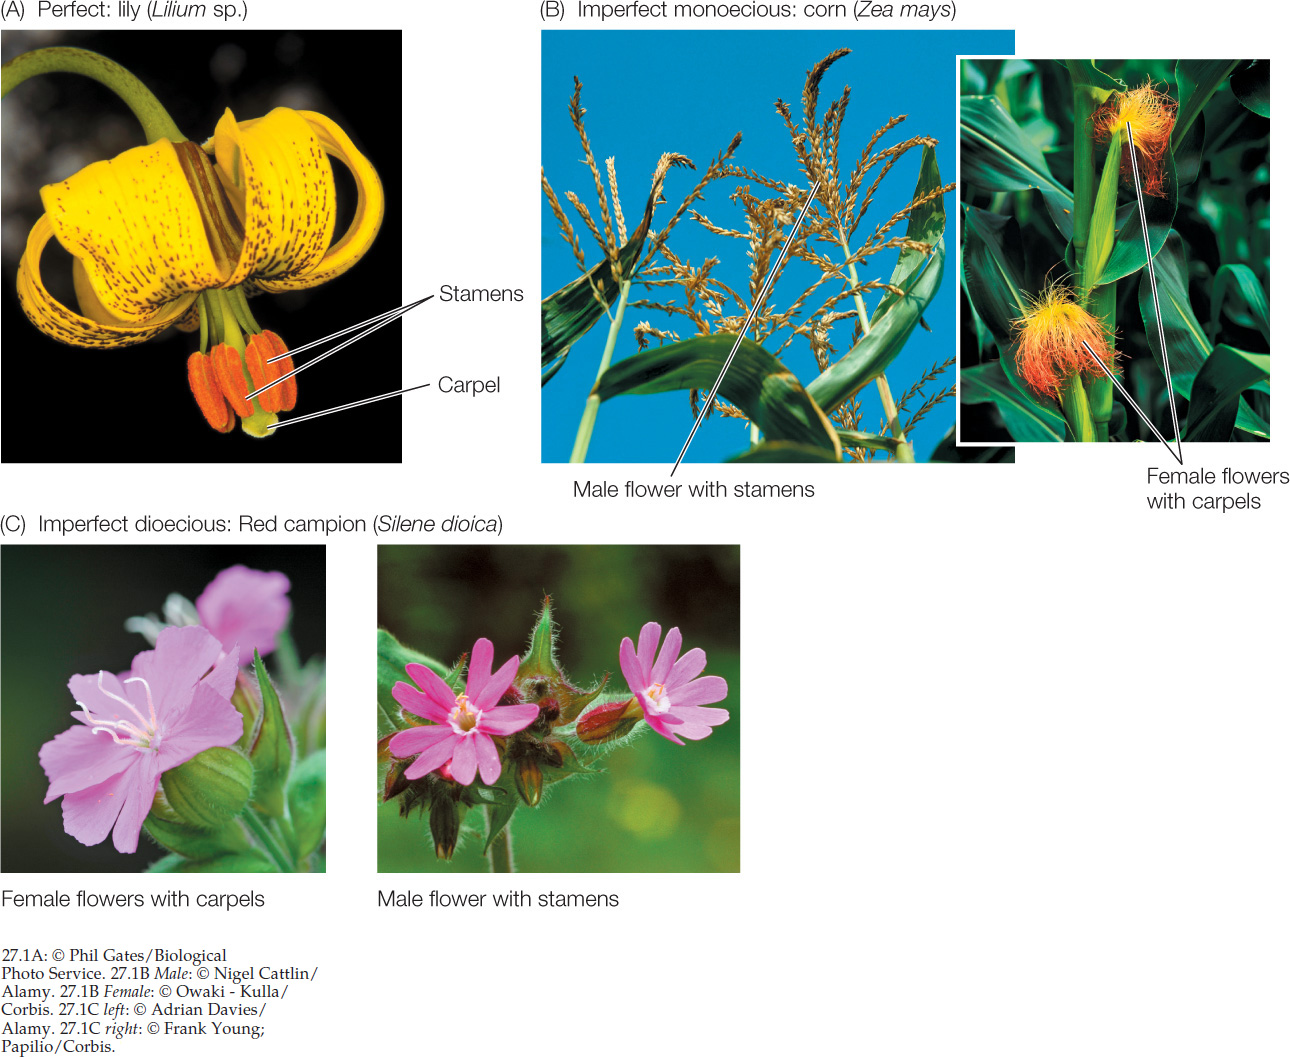 diagram of perfect flower lily car audio amplifier wiring and imperfect flowers ideas for review